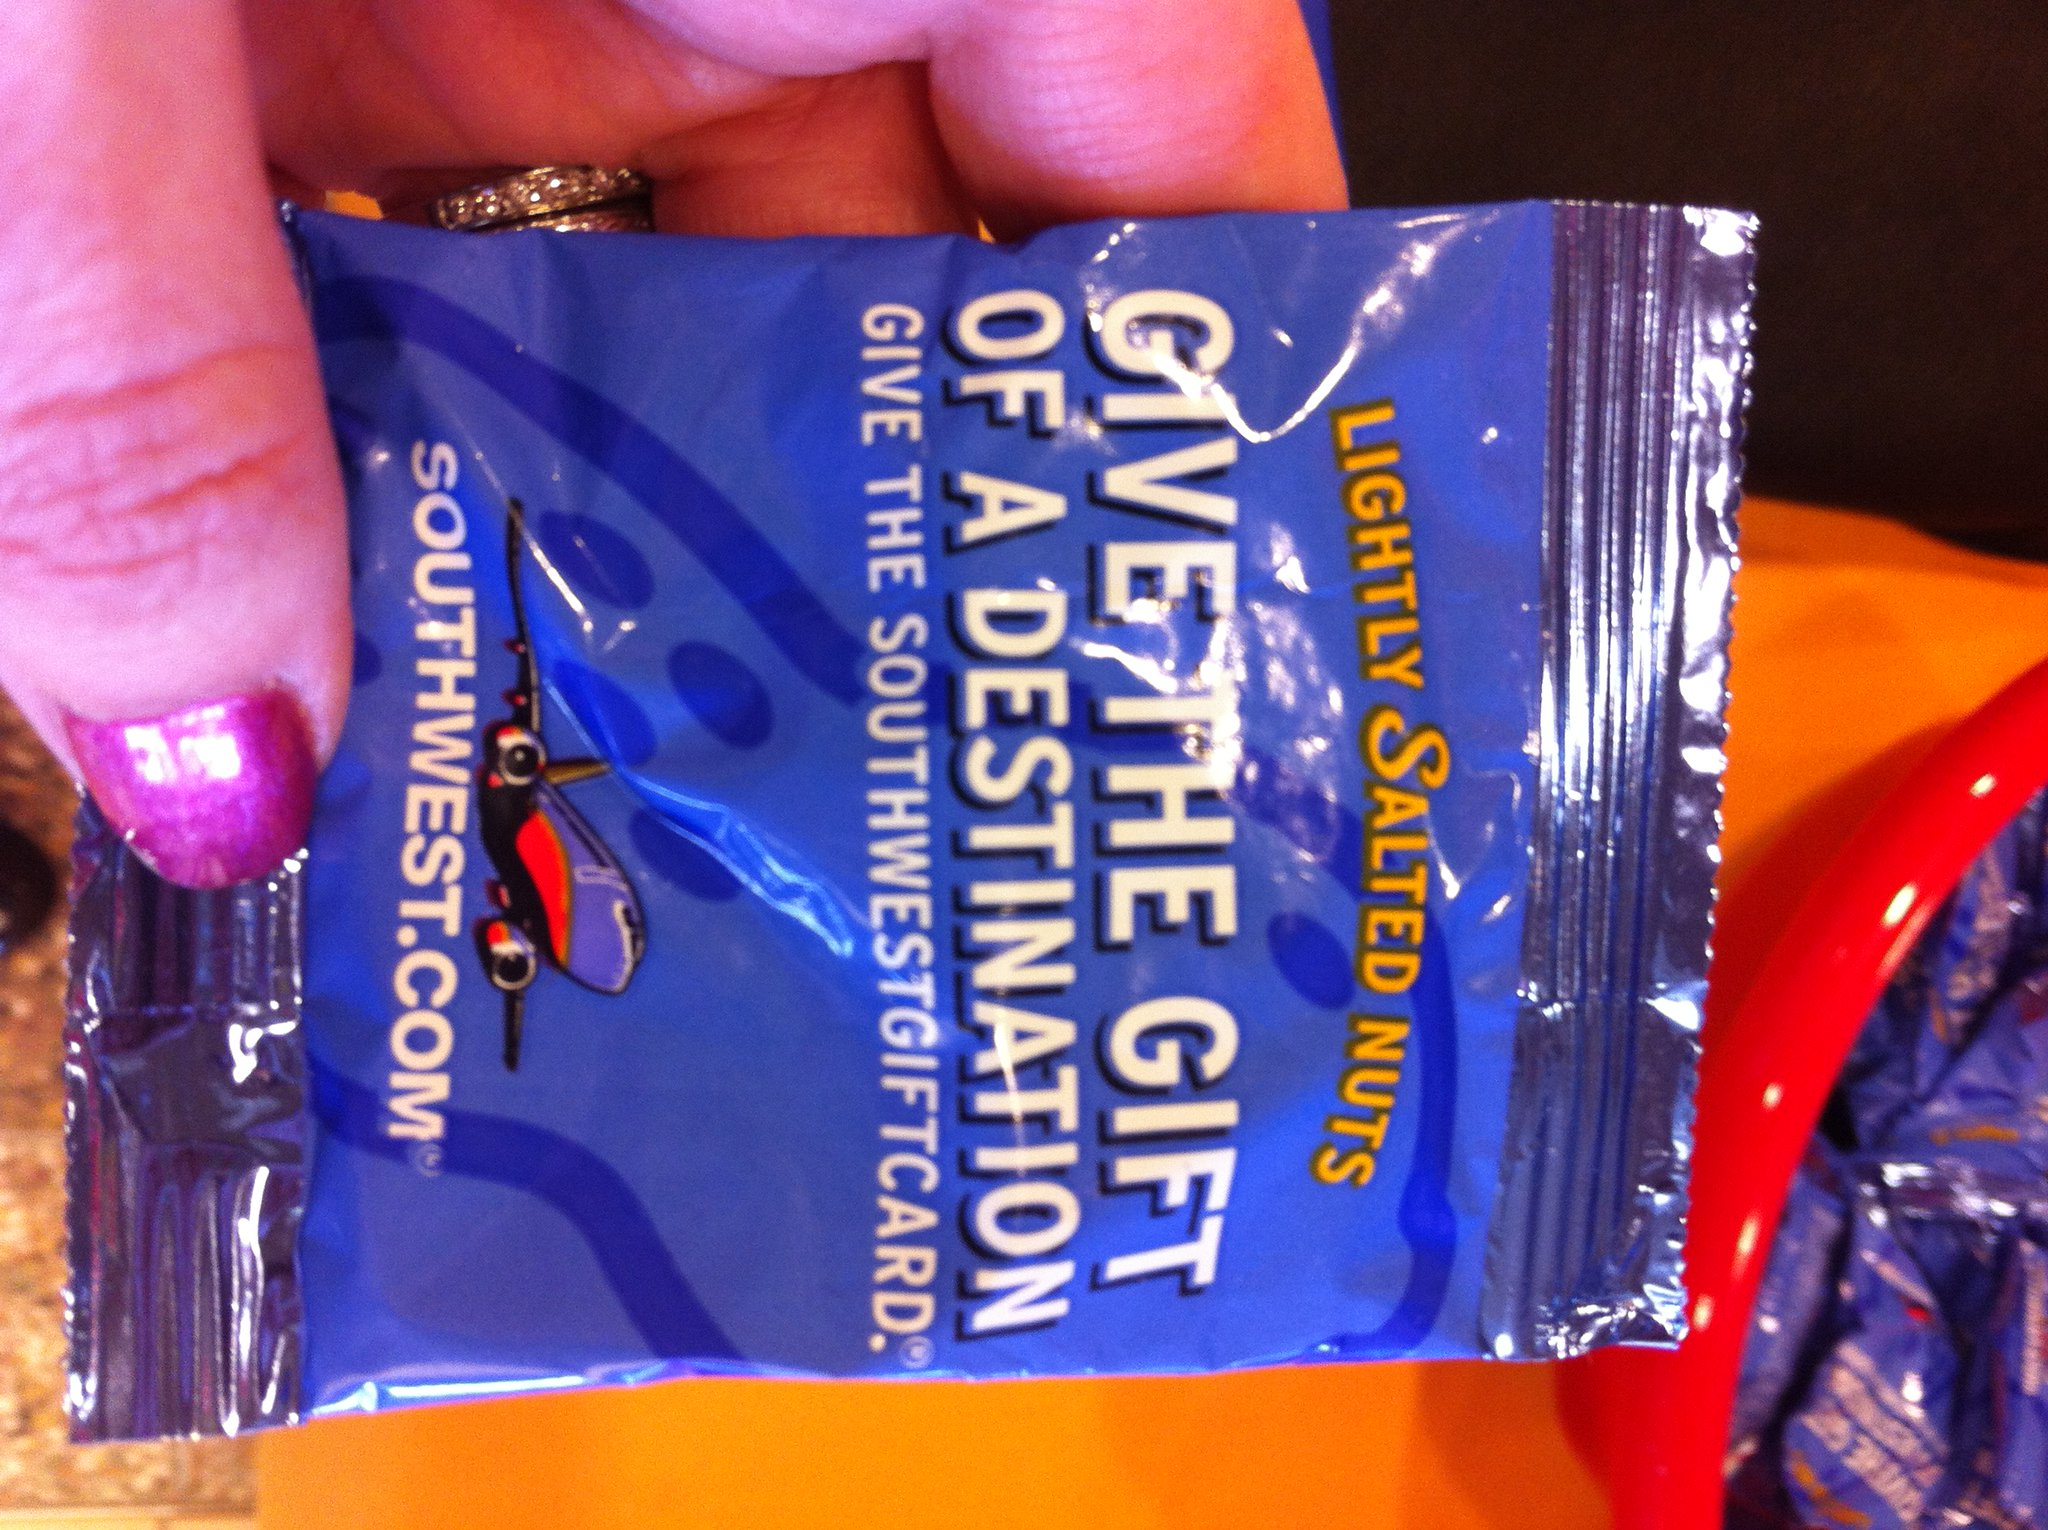 RT @CAKairport: These may be the first @SouthwestAir nuts to ever be at @CAKairport. #nutsaboutsouthwest http://t.co/fzalUIX6